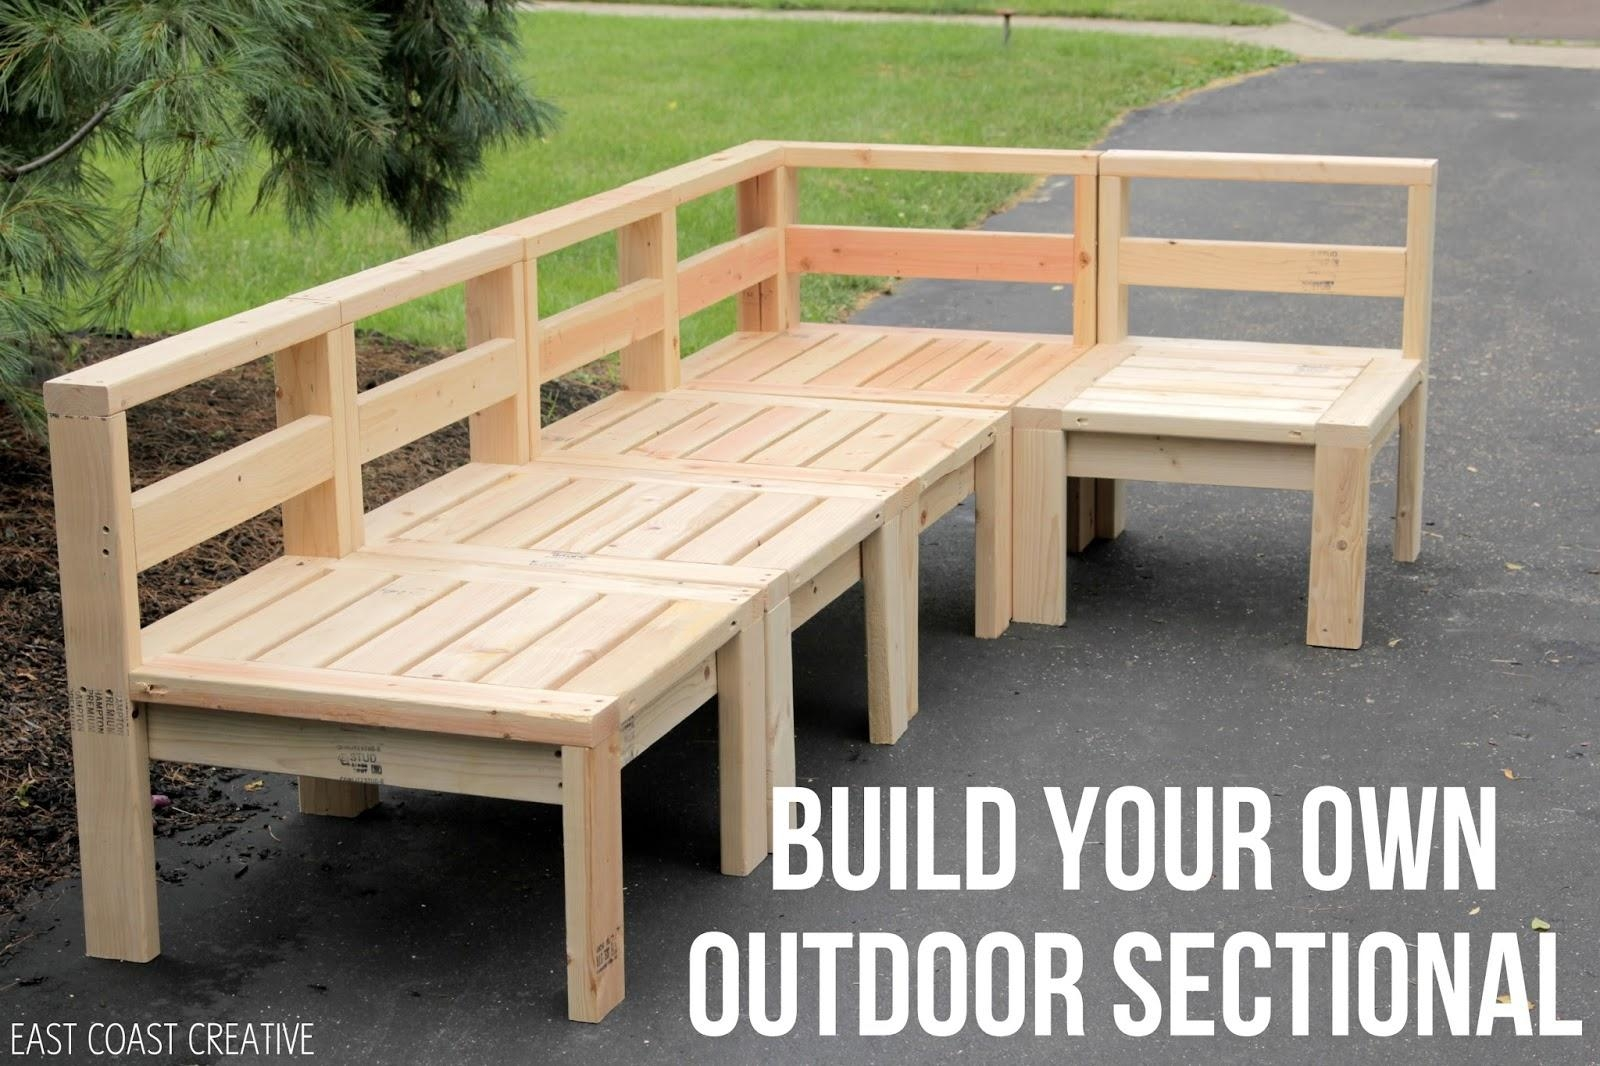 How To Build An Outdoor Sectional {Knock It Off} – East Coast Regarding Building A Sectional Sofa (View 9 of 15)